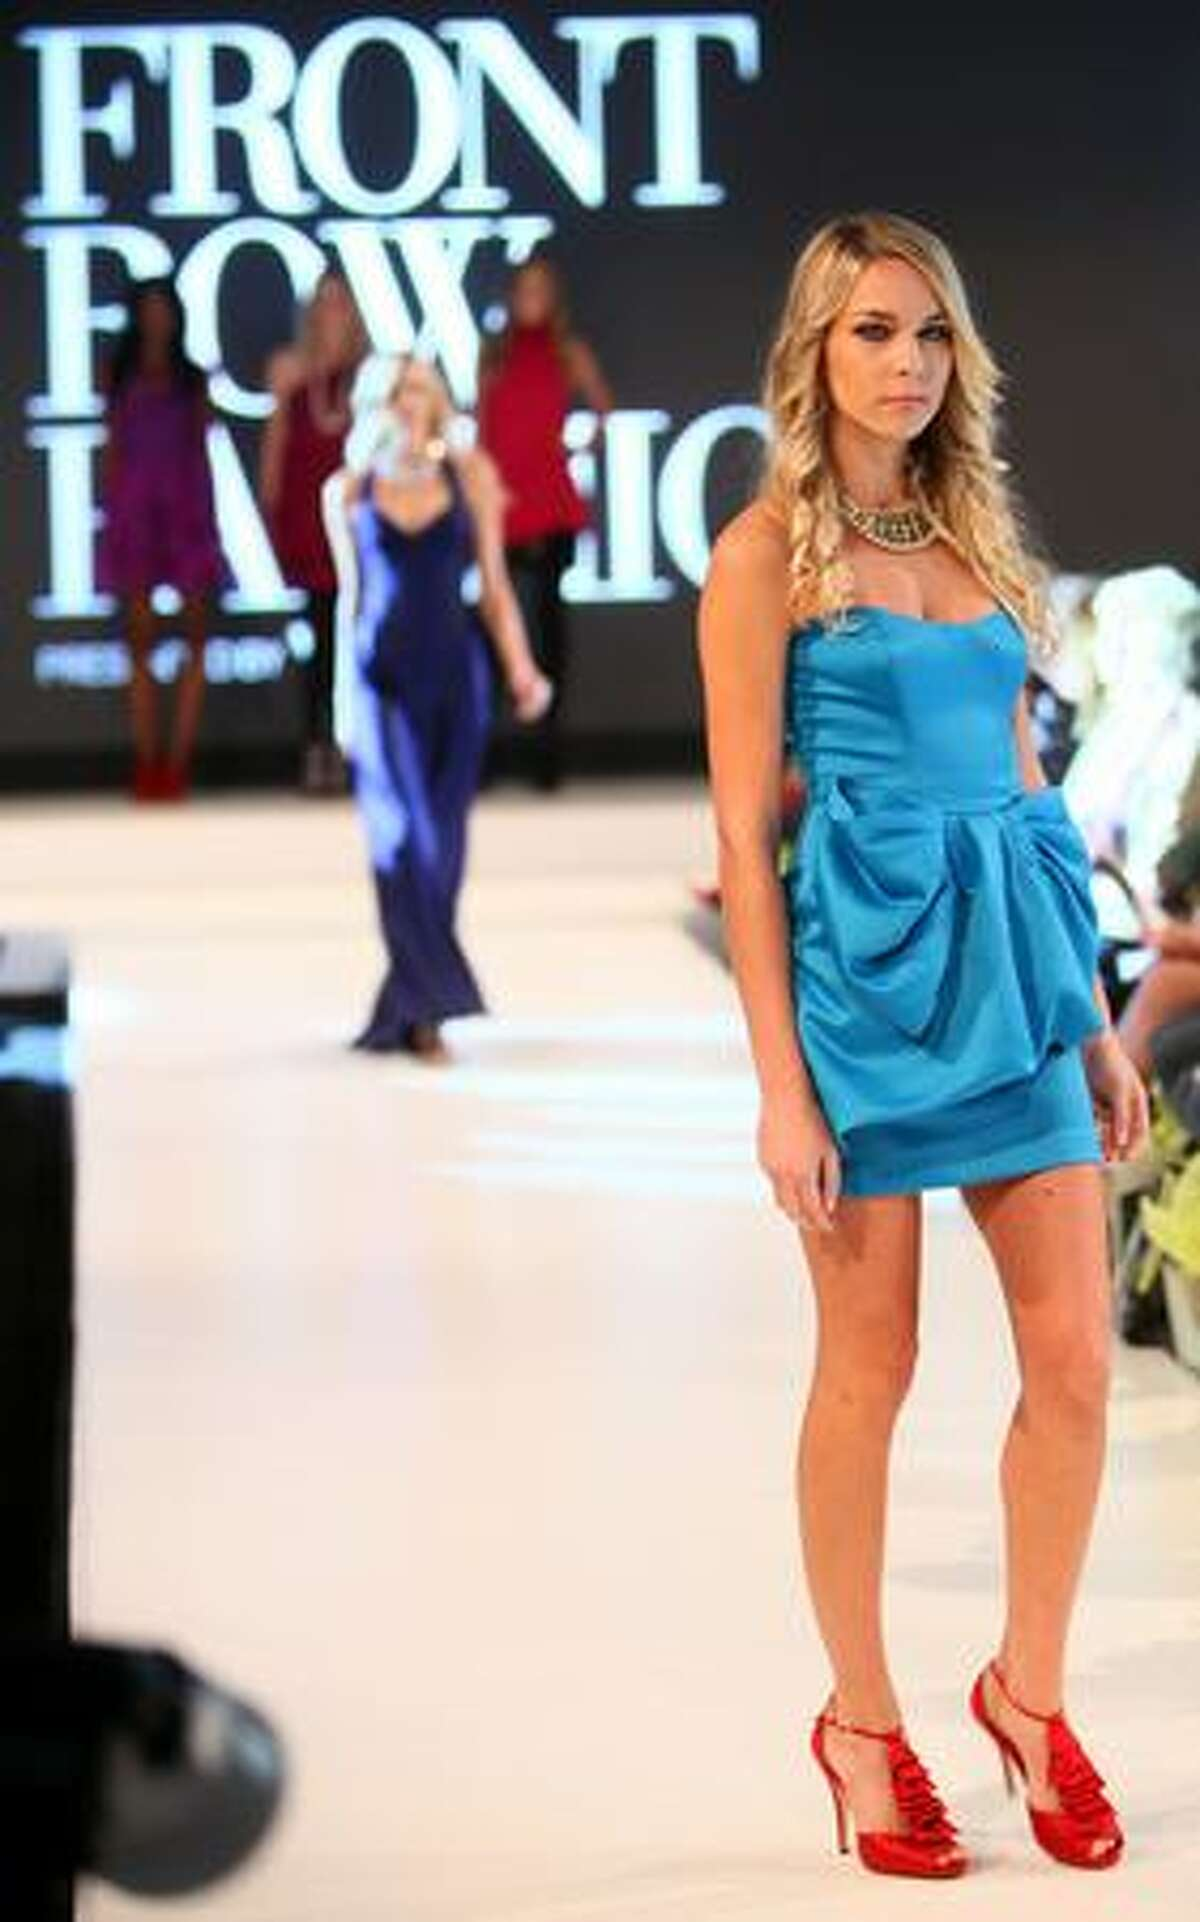 Models walk the runway during Vogue's Front Row Fashion show at the Hyatt Regency Bellevue.